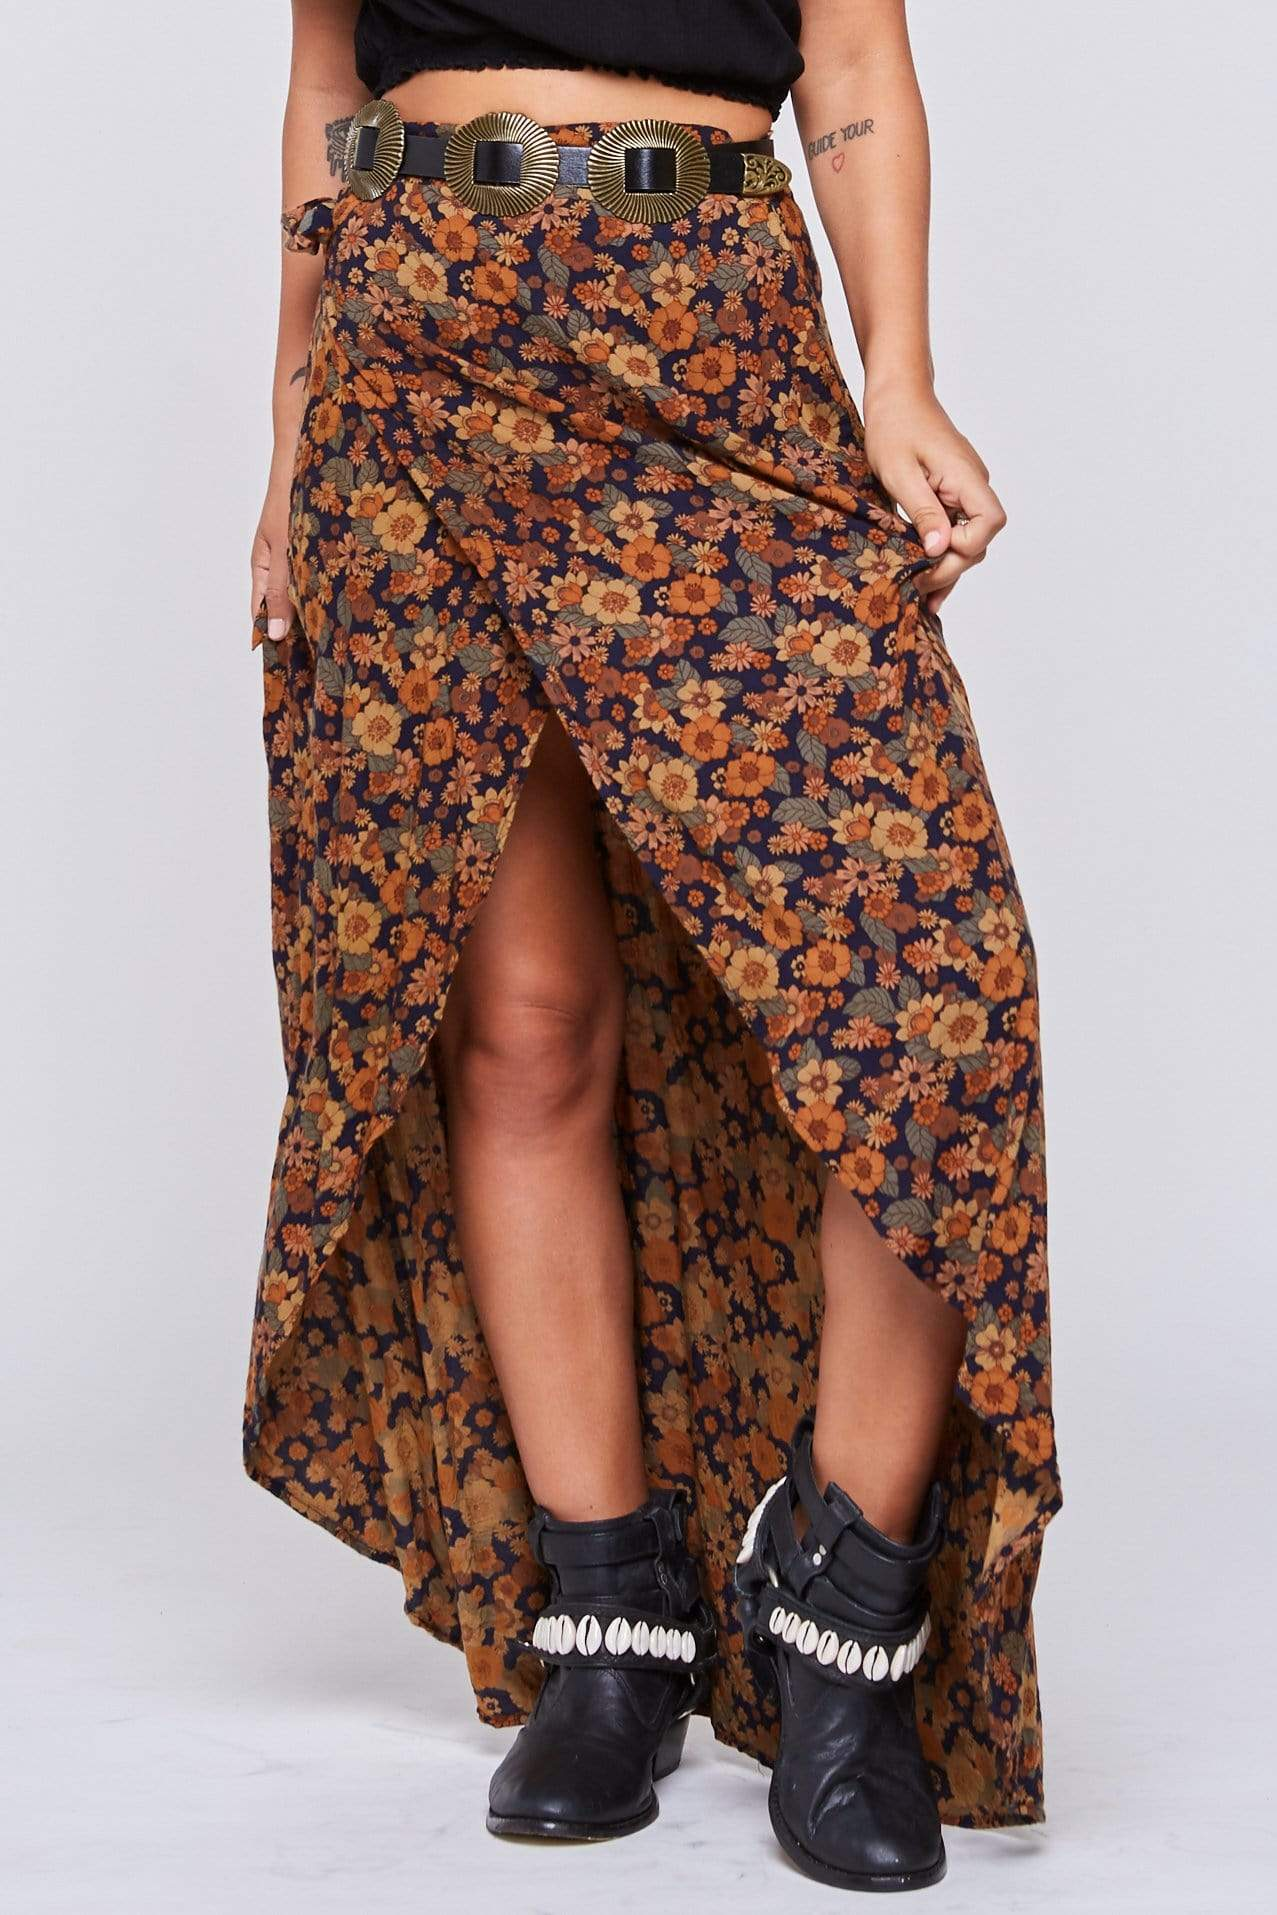 Wrap Maxi Skirt - Skirt - LOST IN PARADISE